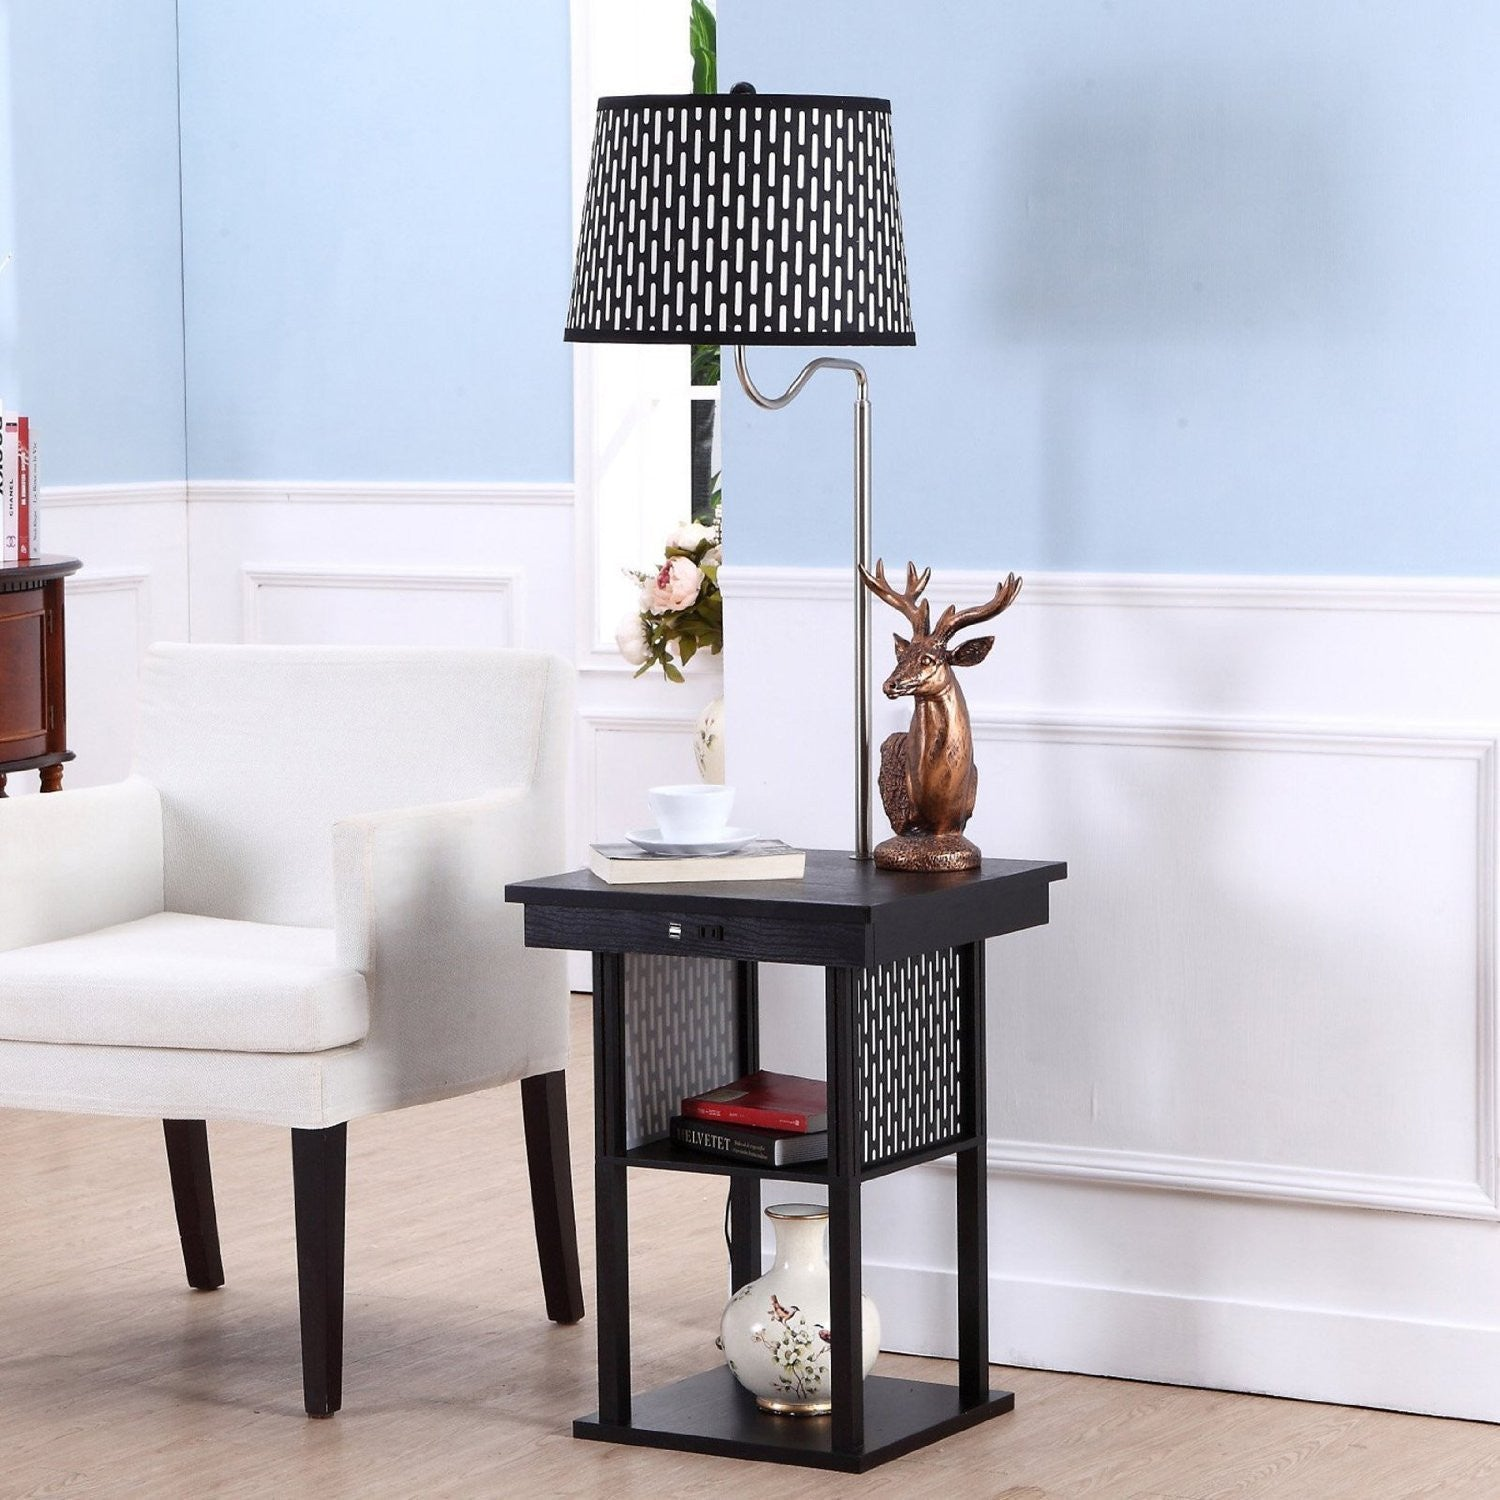 Brightech Store | Madison Floor Lamp With Built In Two Tier Black Table  With Open Display Space U2013 Outfitted With 2 USB Ports And US Standard Outlet  For ...